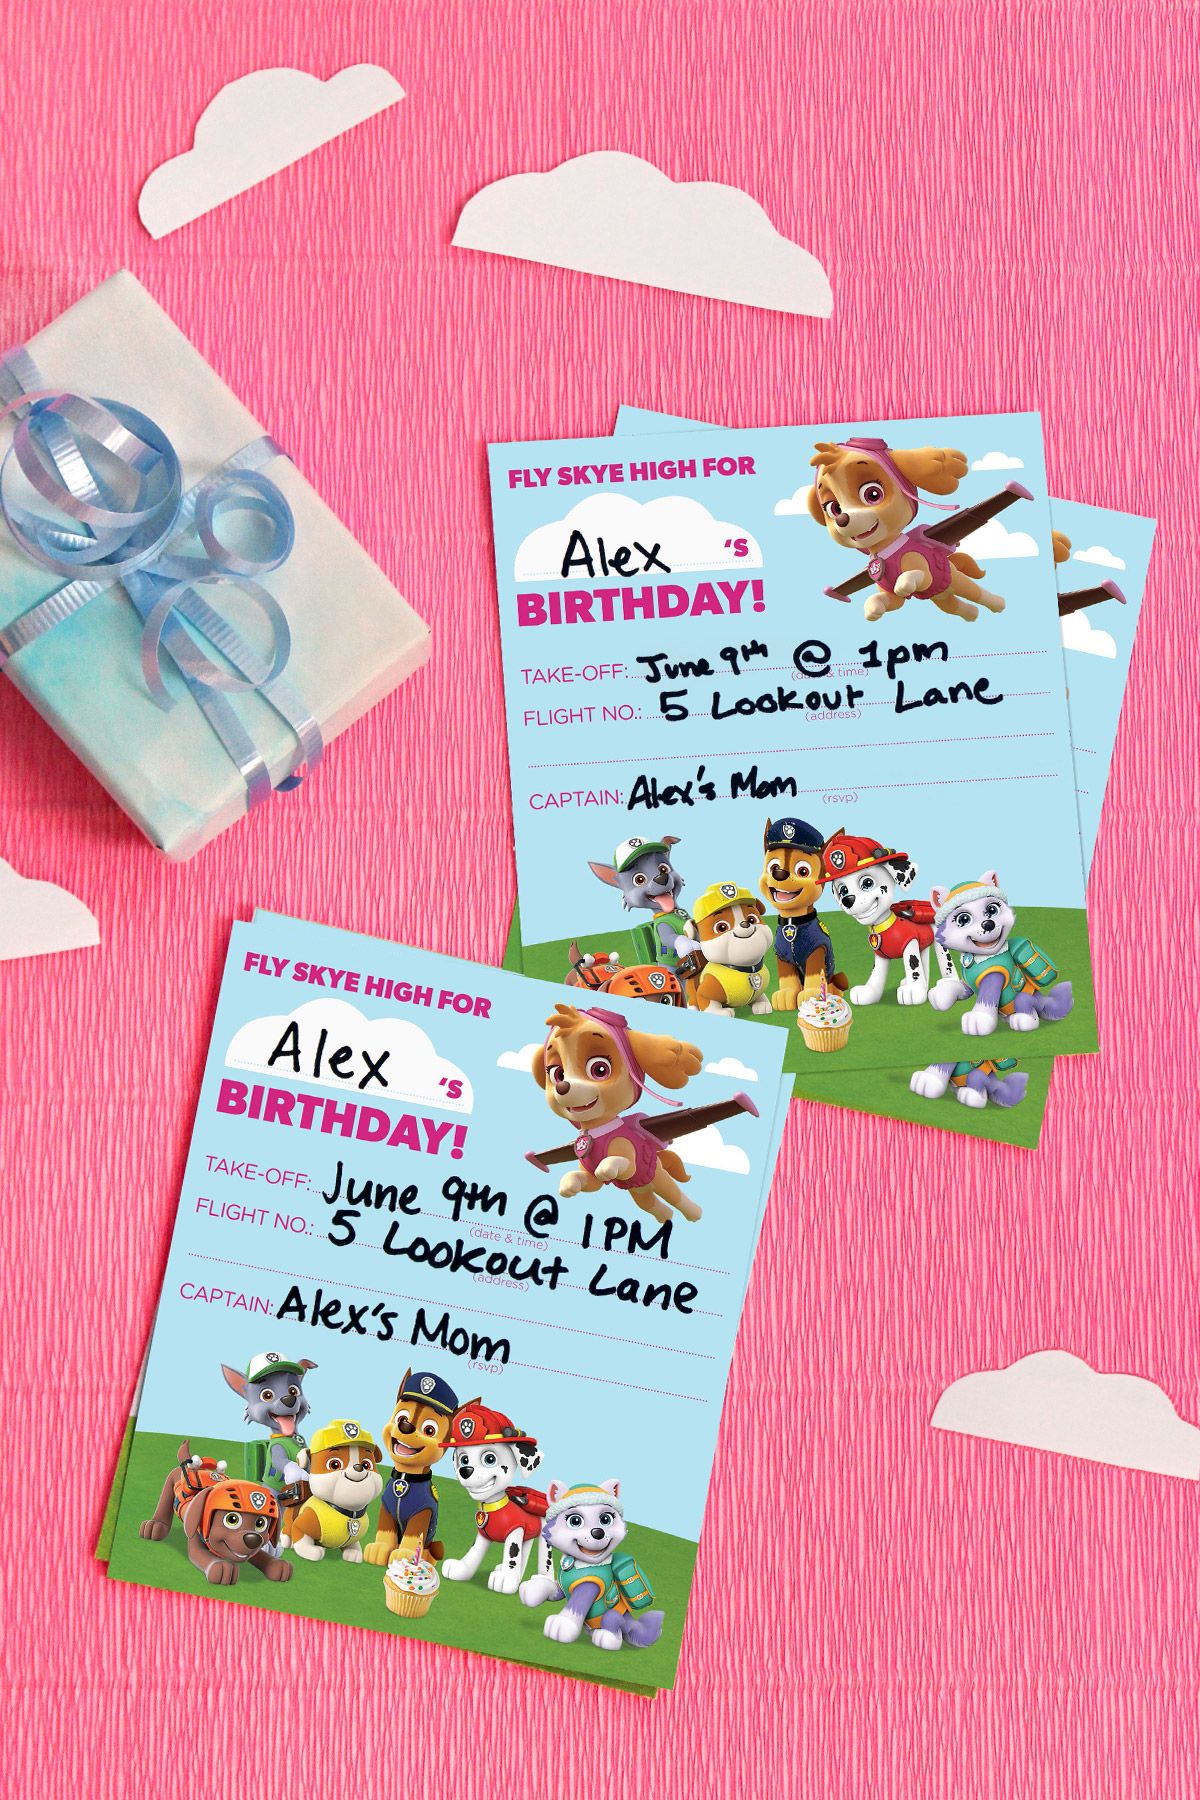 PAW Patrol Skye Birthday Party Invitations | Nickelodeon Parents